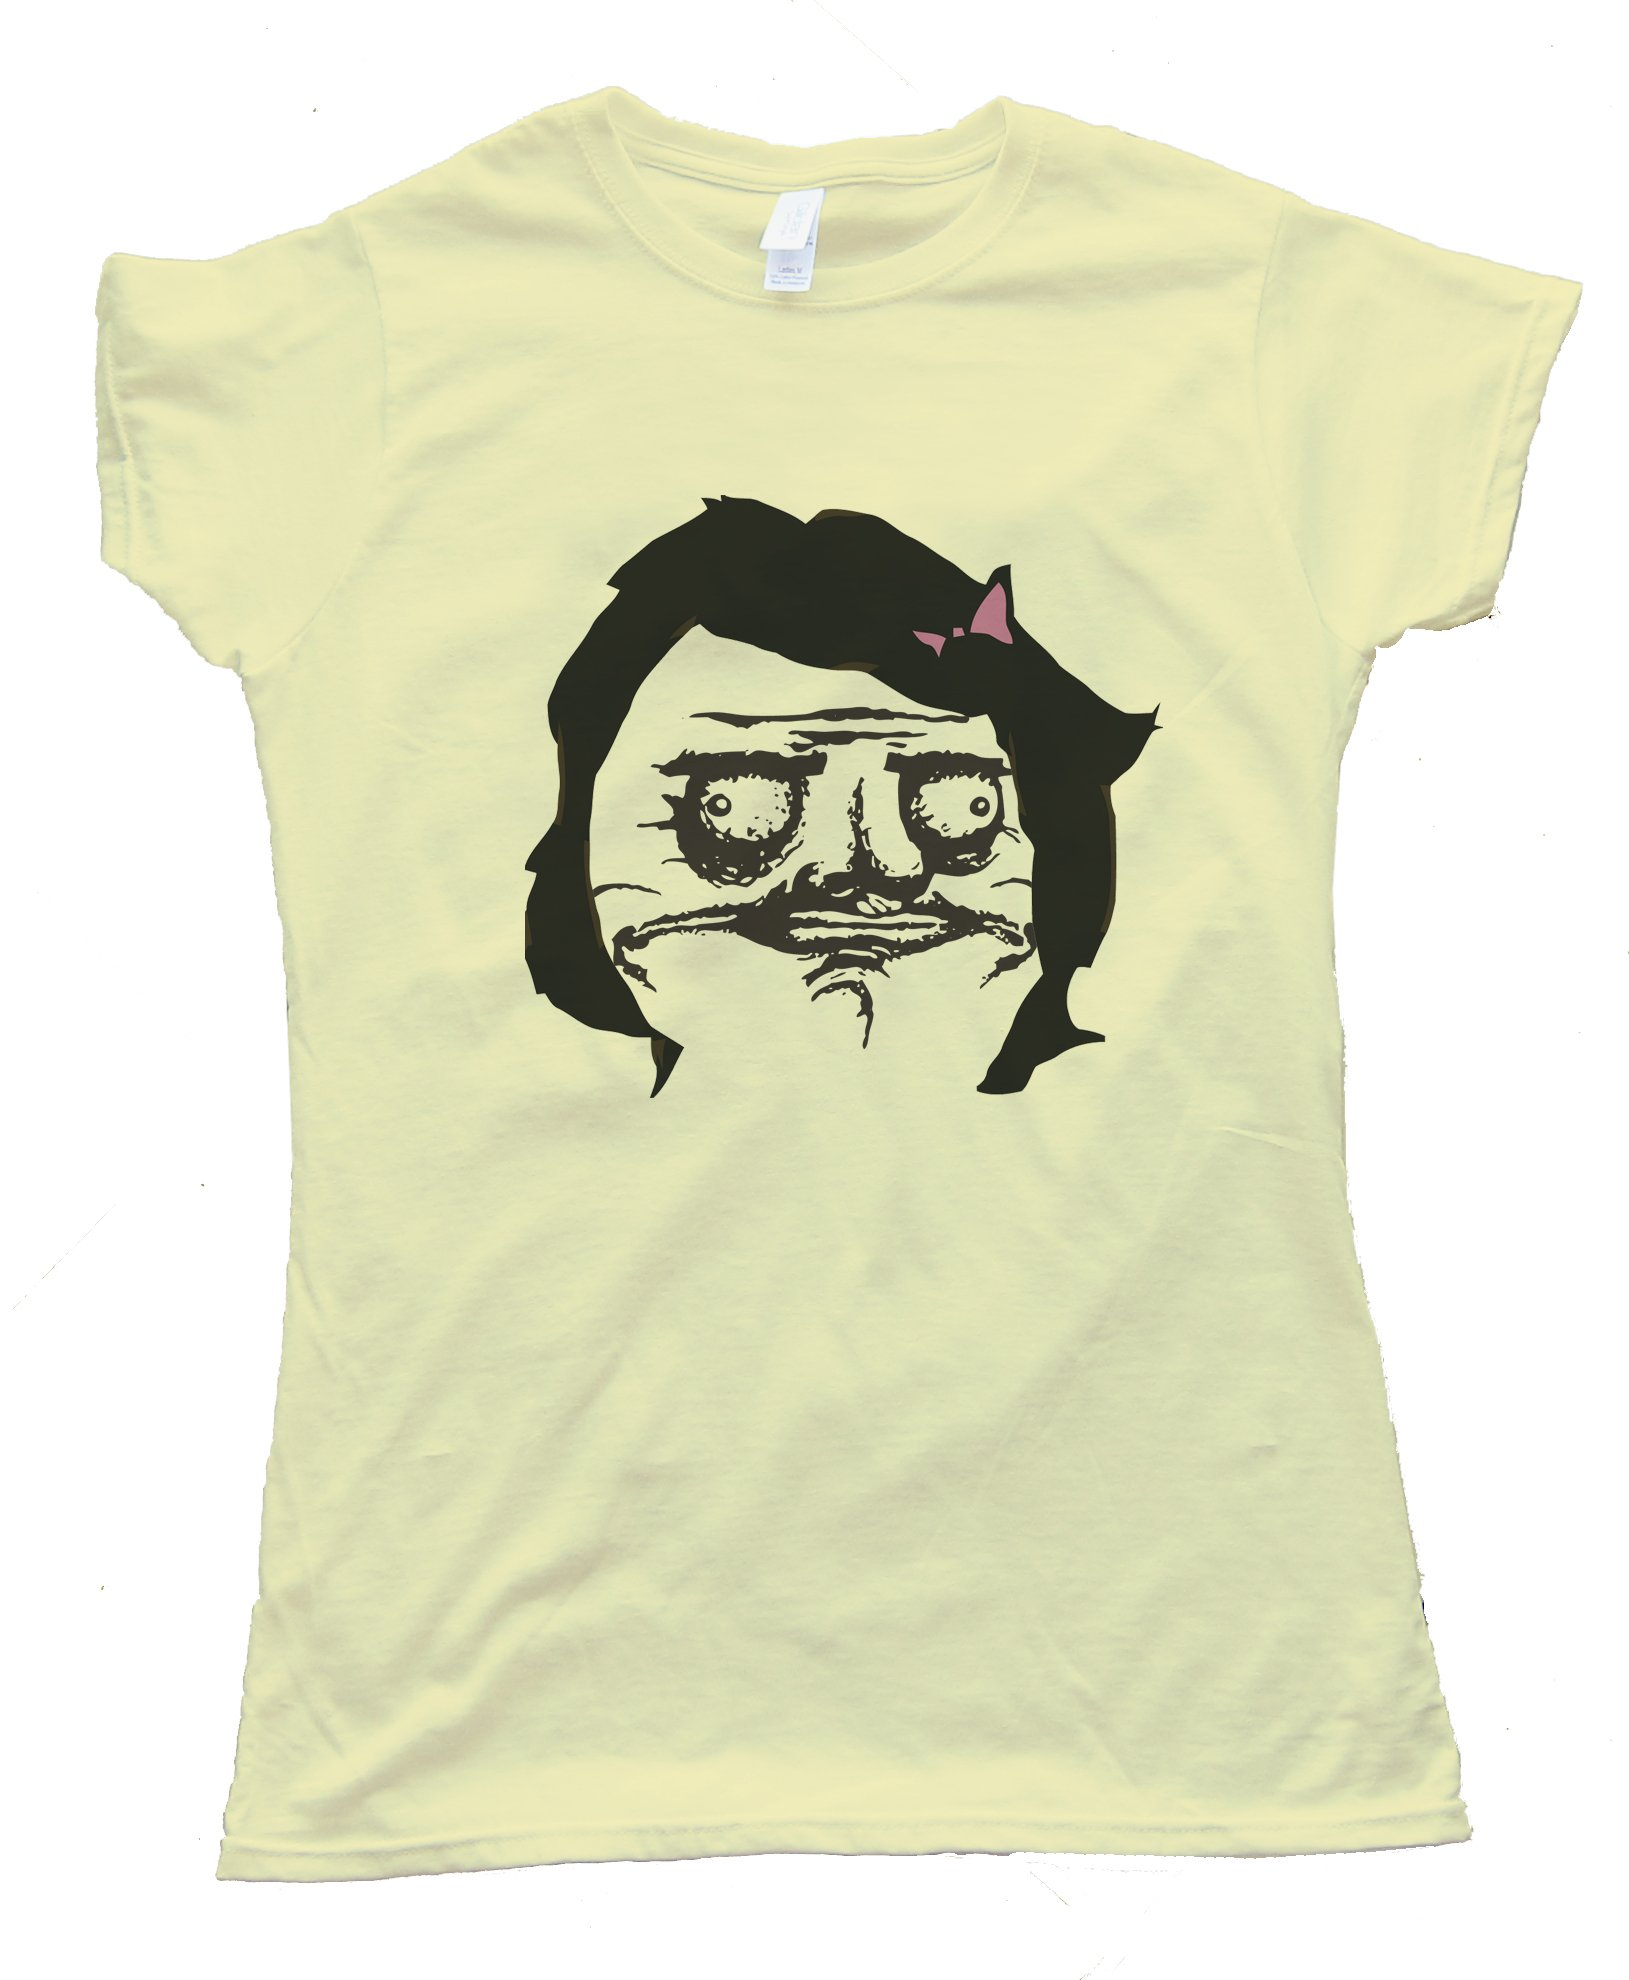 Female Black Hair Me Gusta Rage Comic Face Tee Shirt